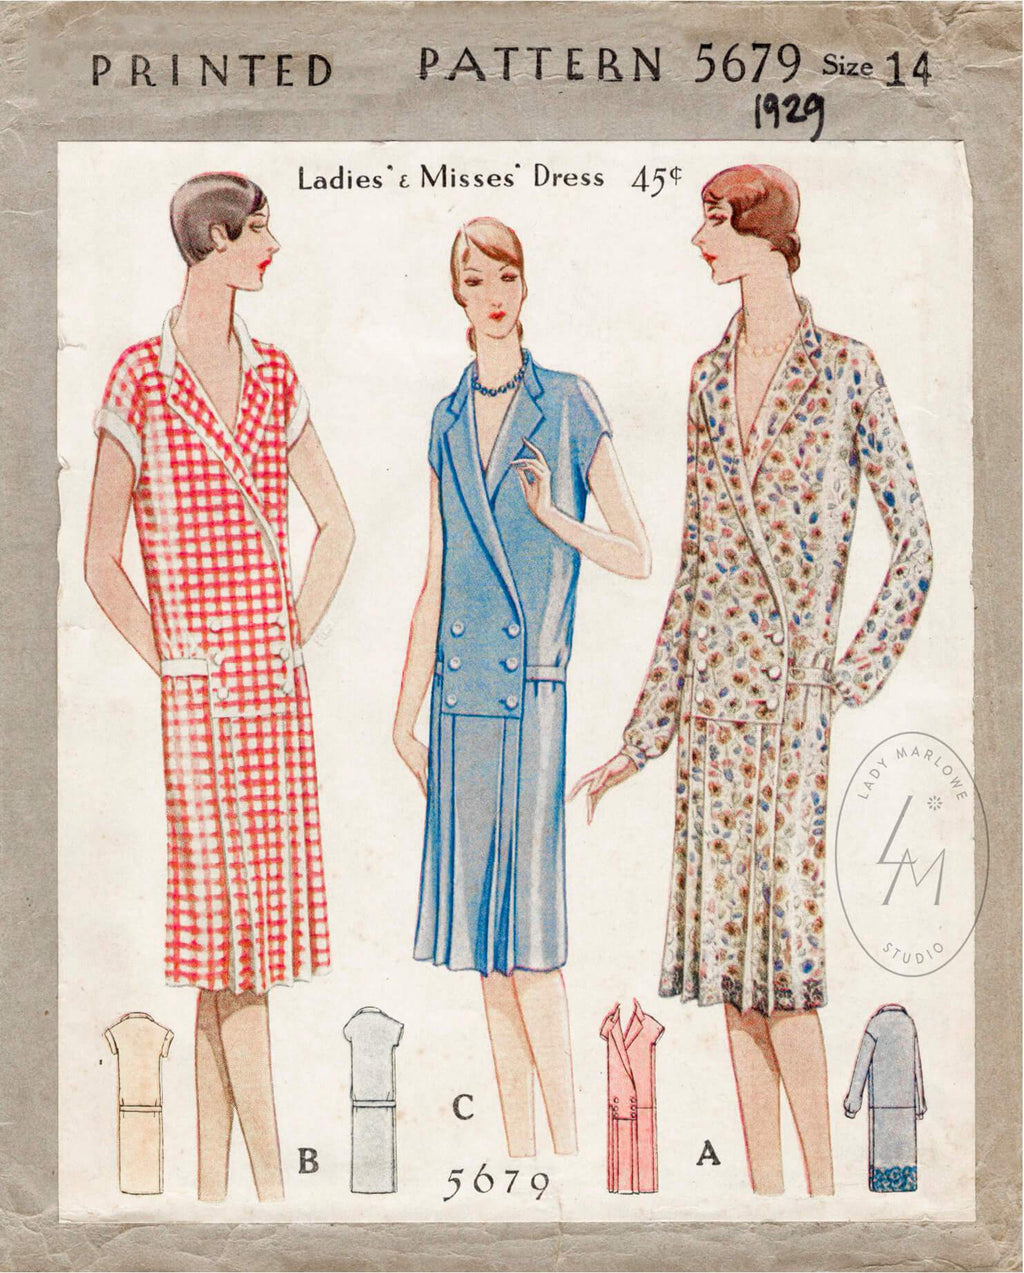 McCall 5679 1929 dress sewing pattern